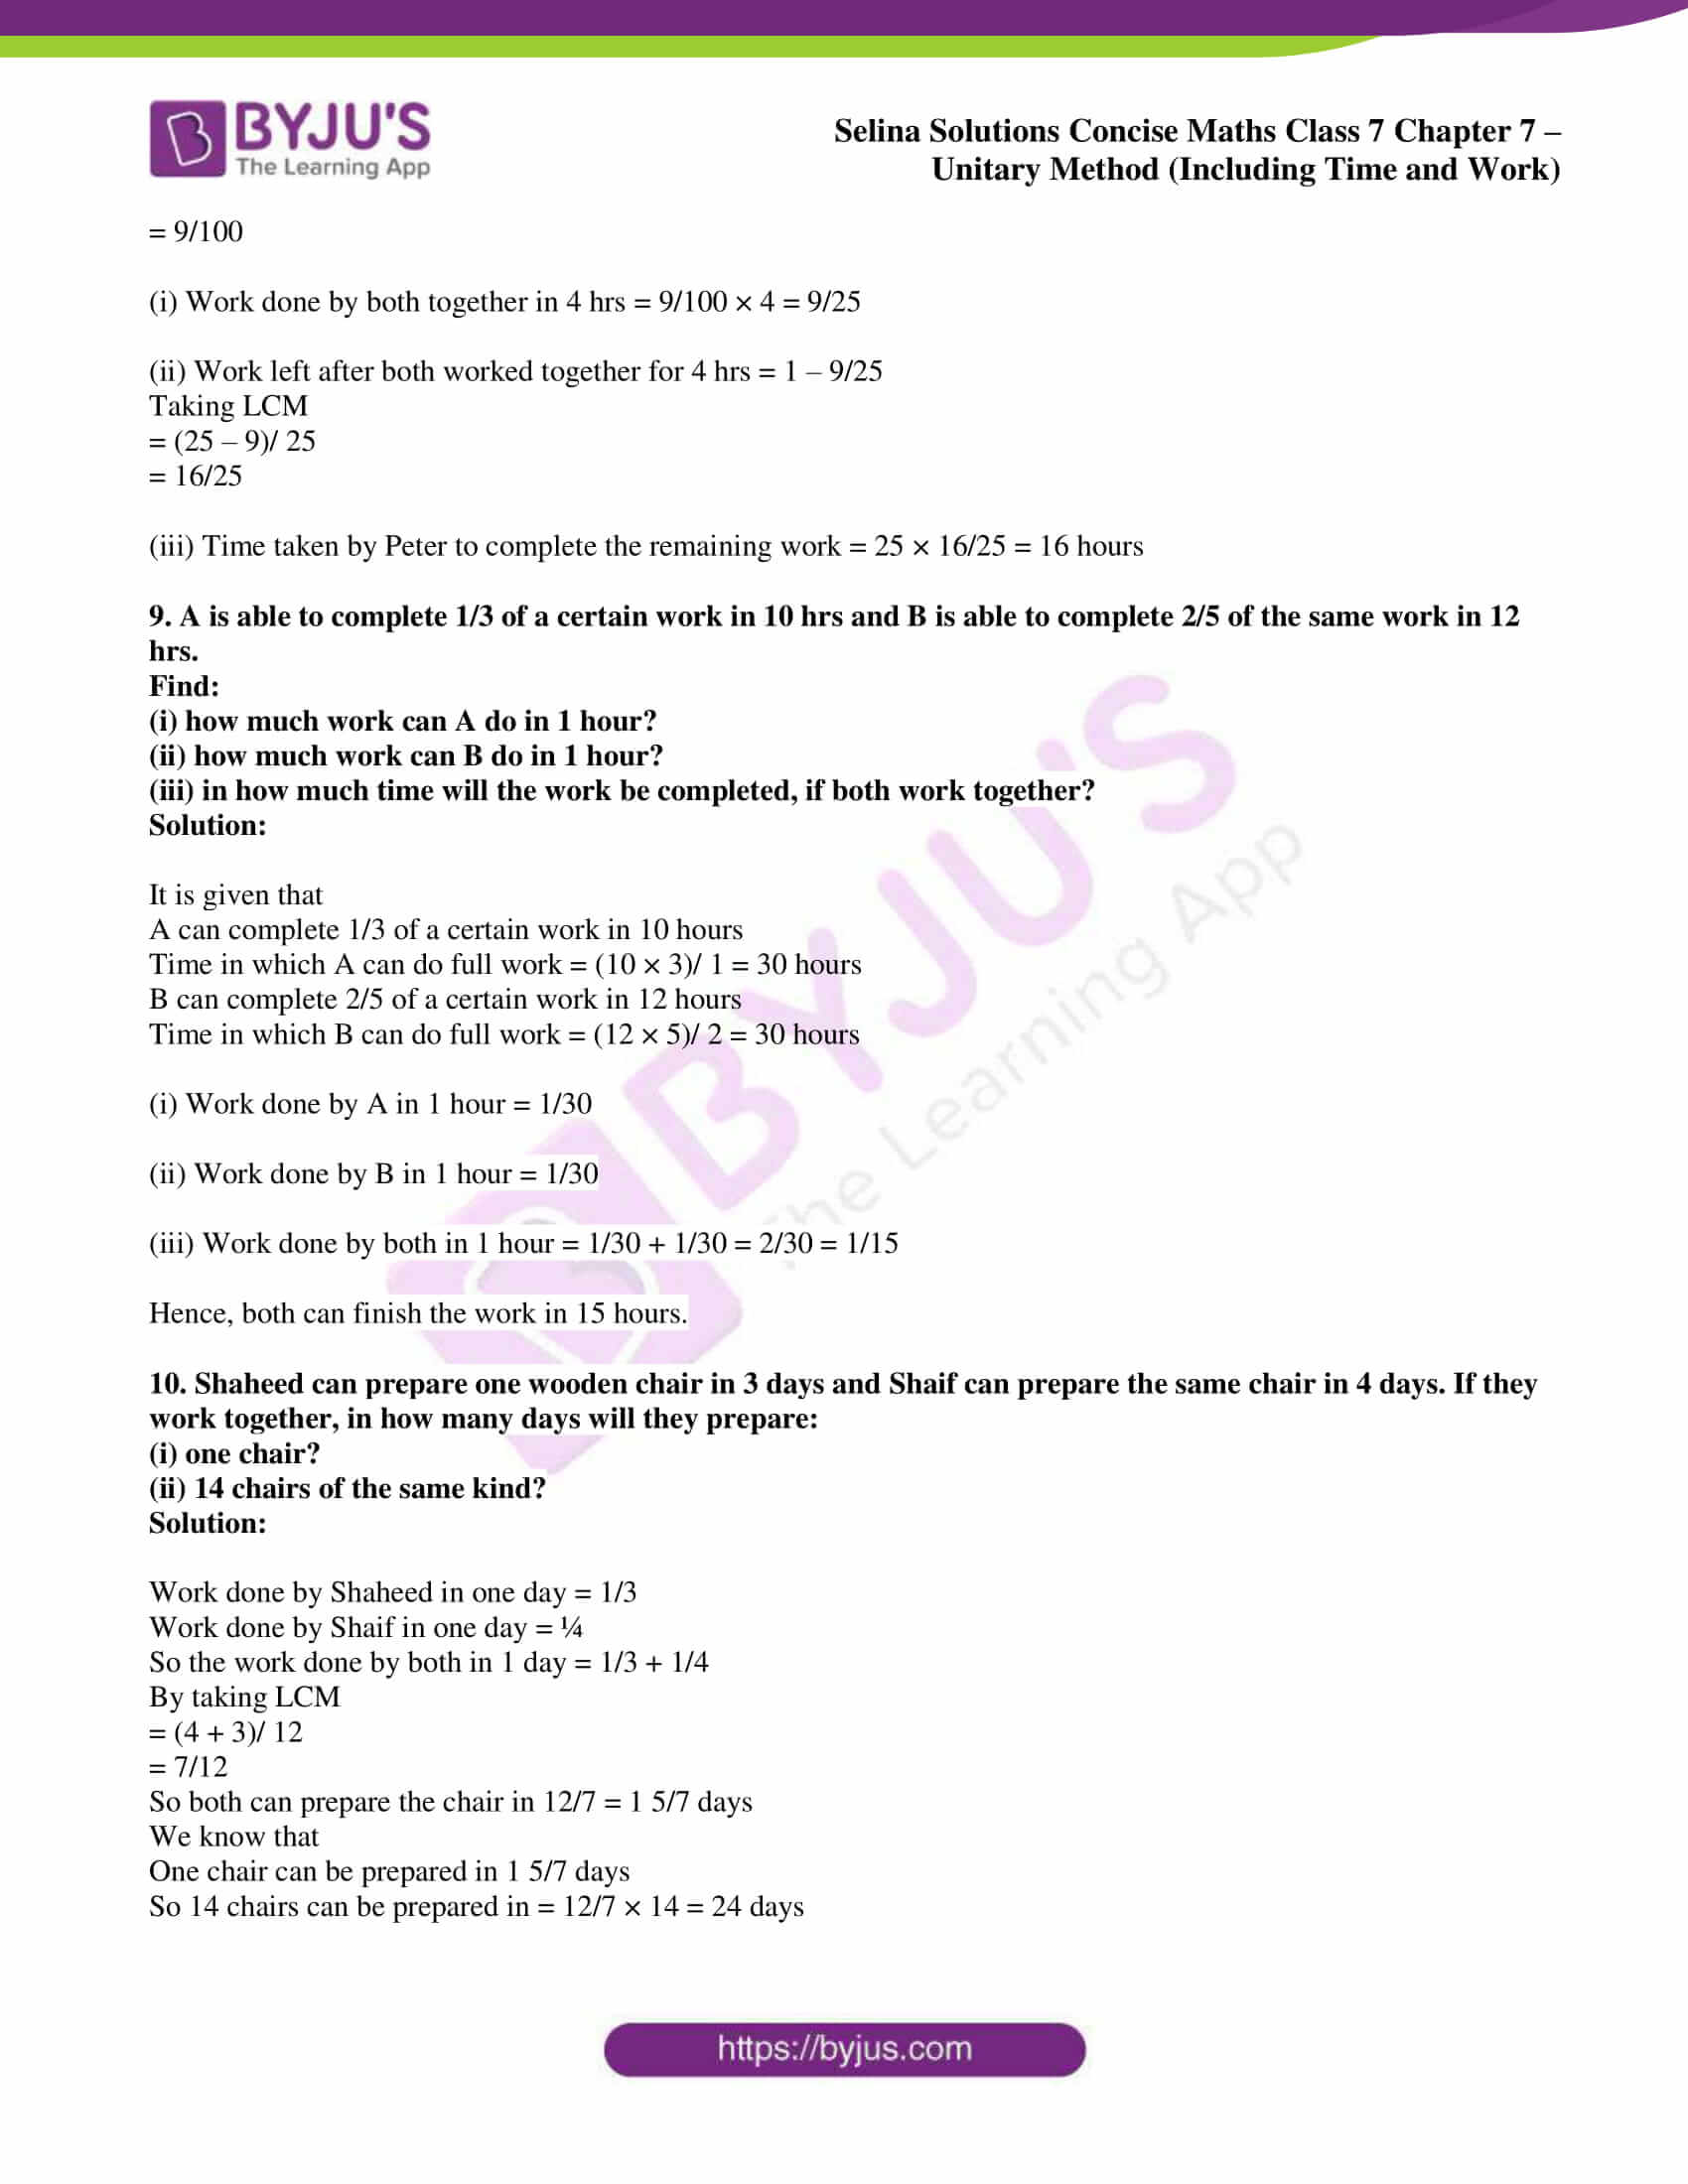 selina sol concise maths class 7 ch7 ex 7c 4